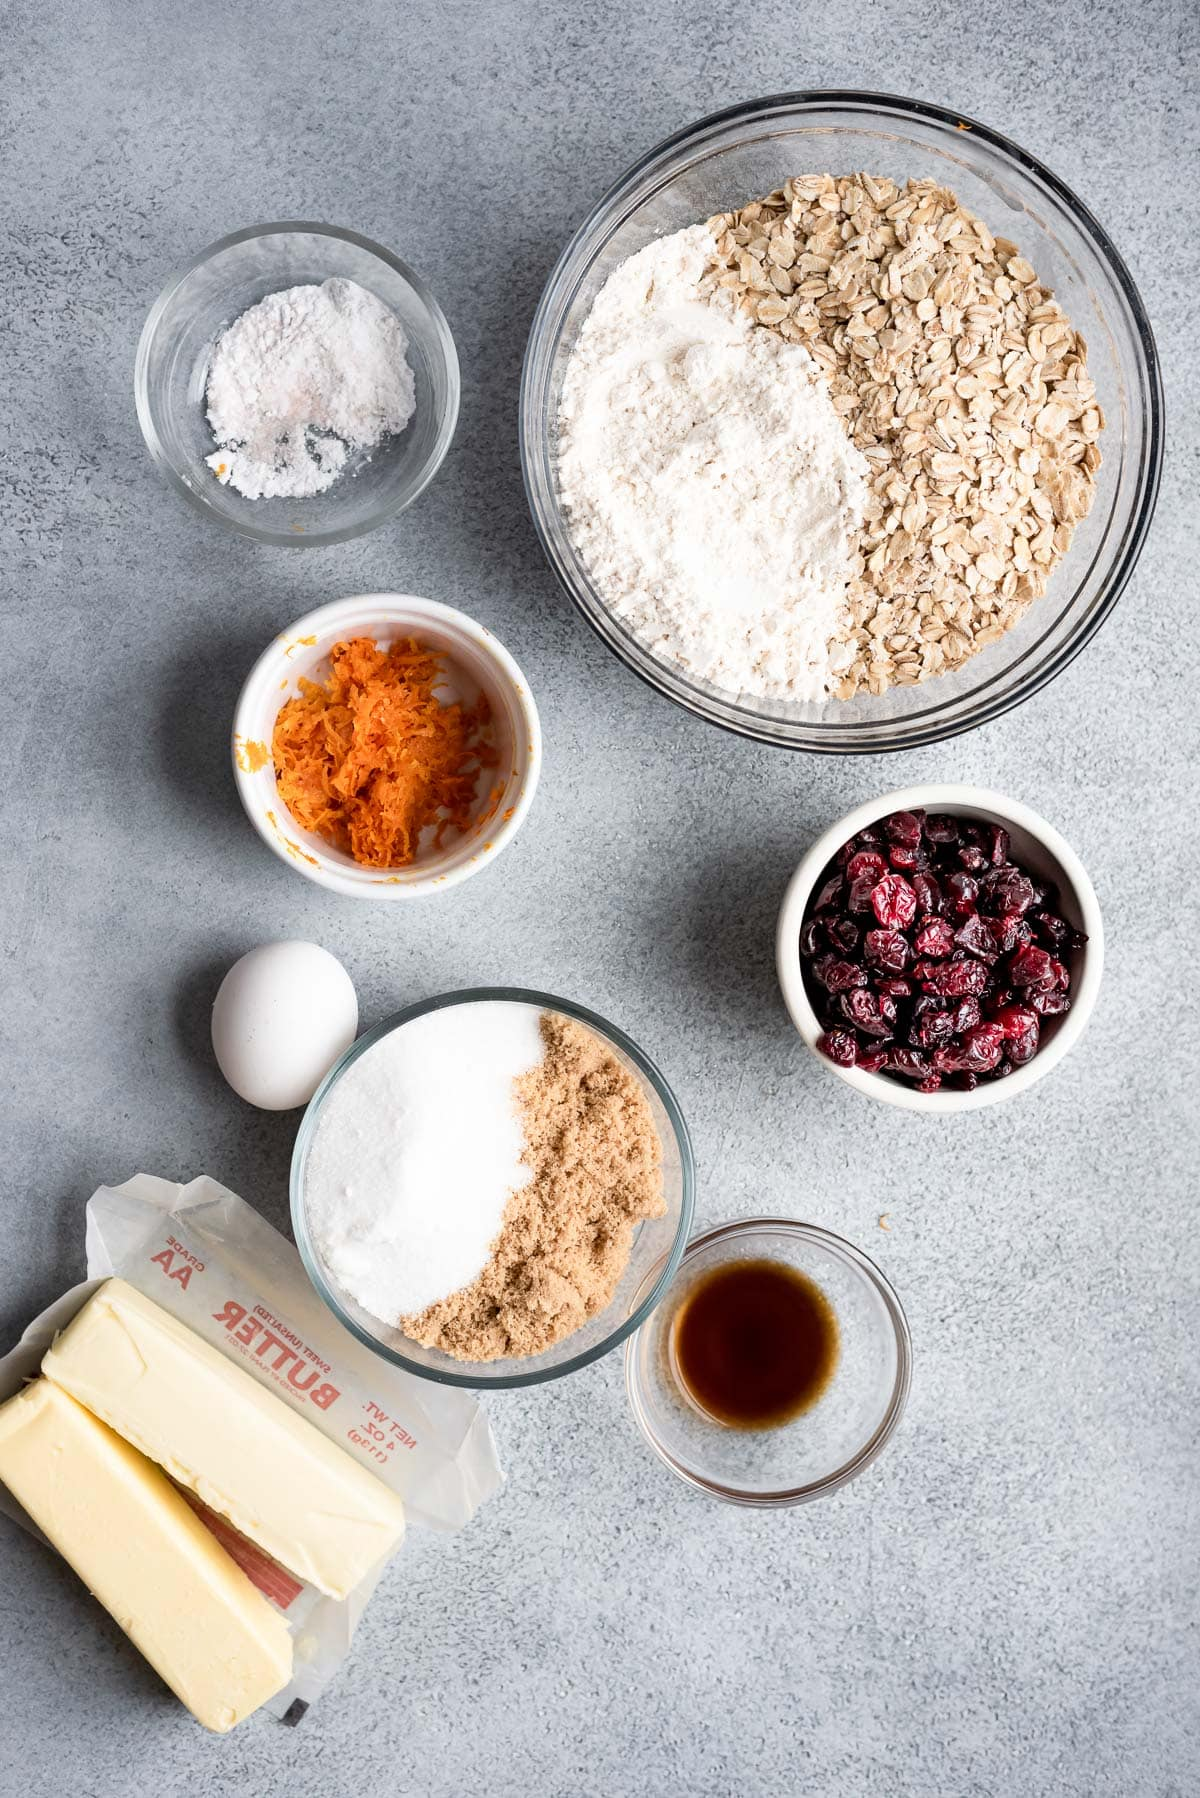 ingredients for cookies in small bowls